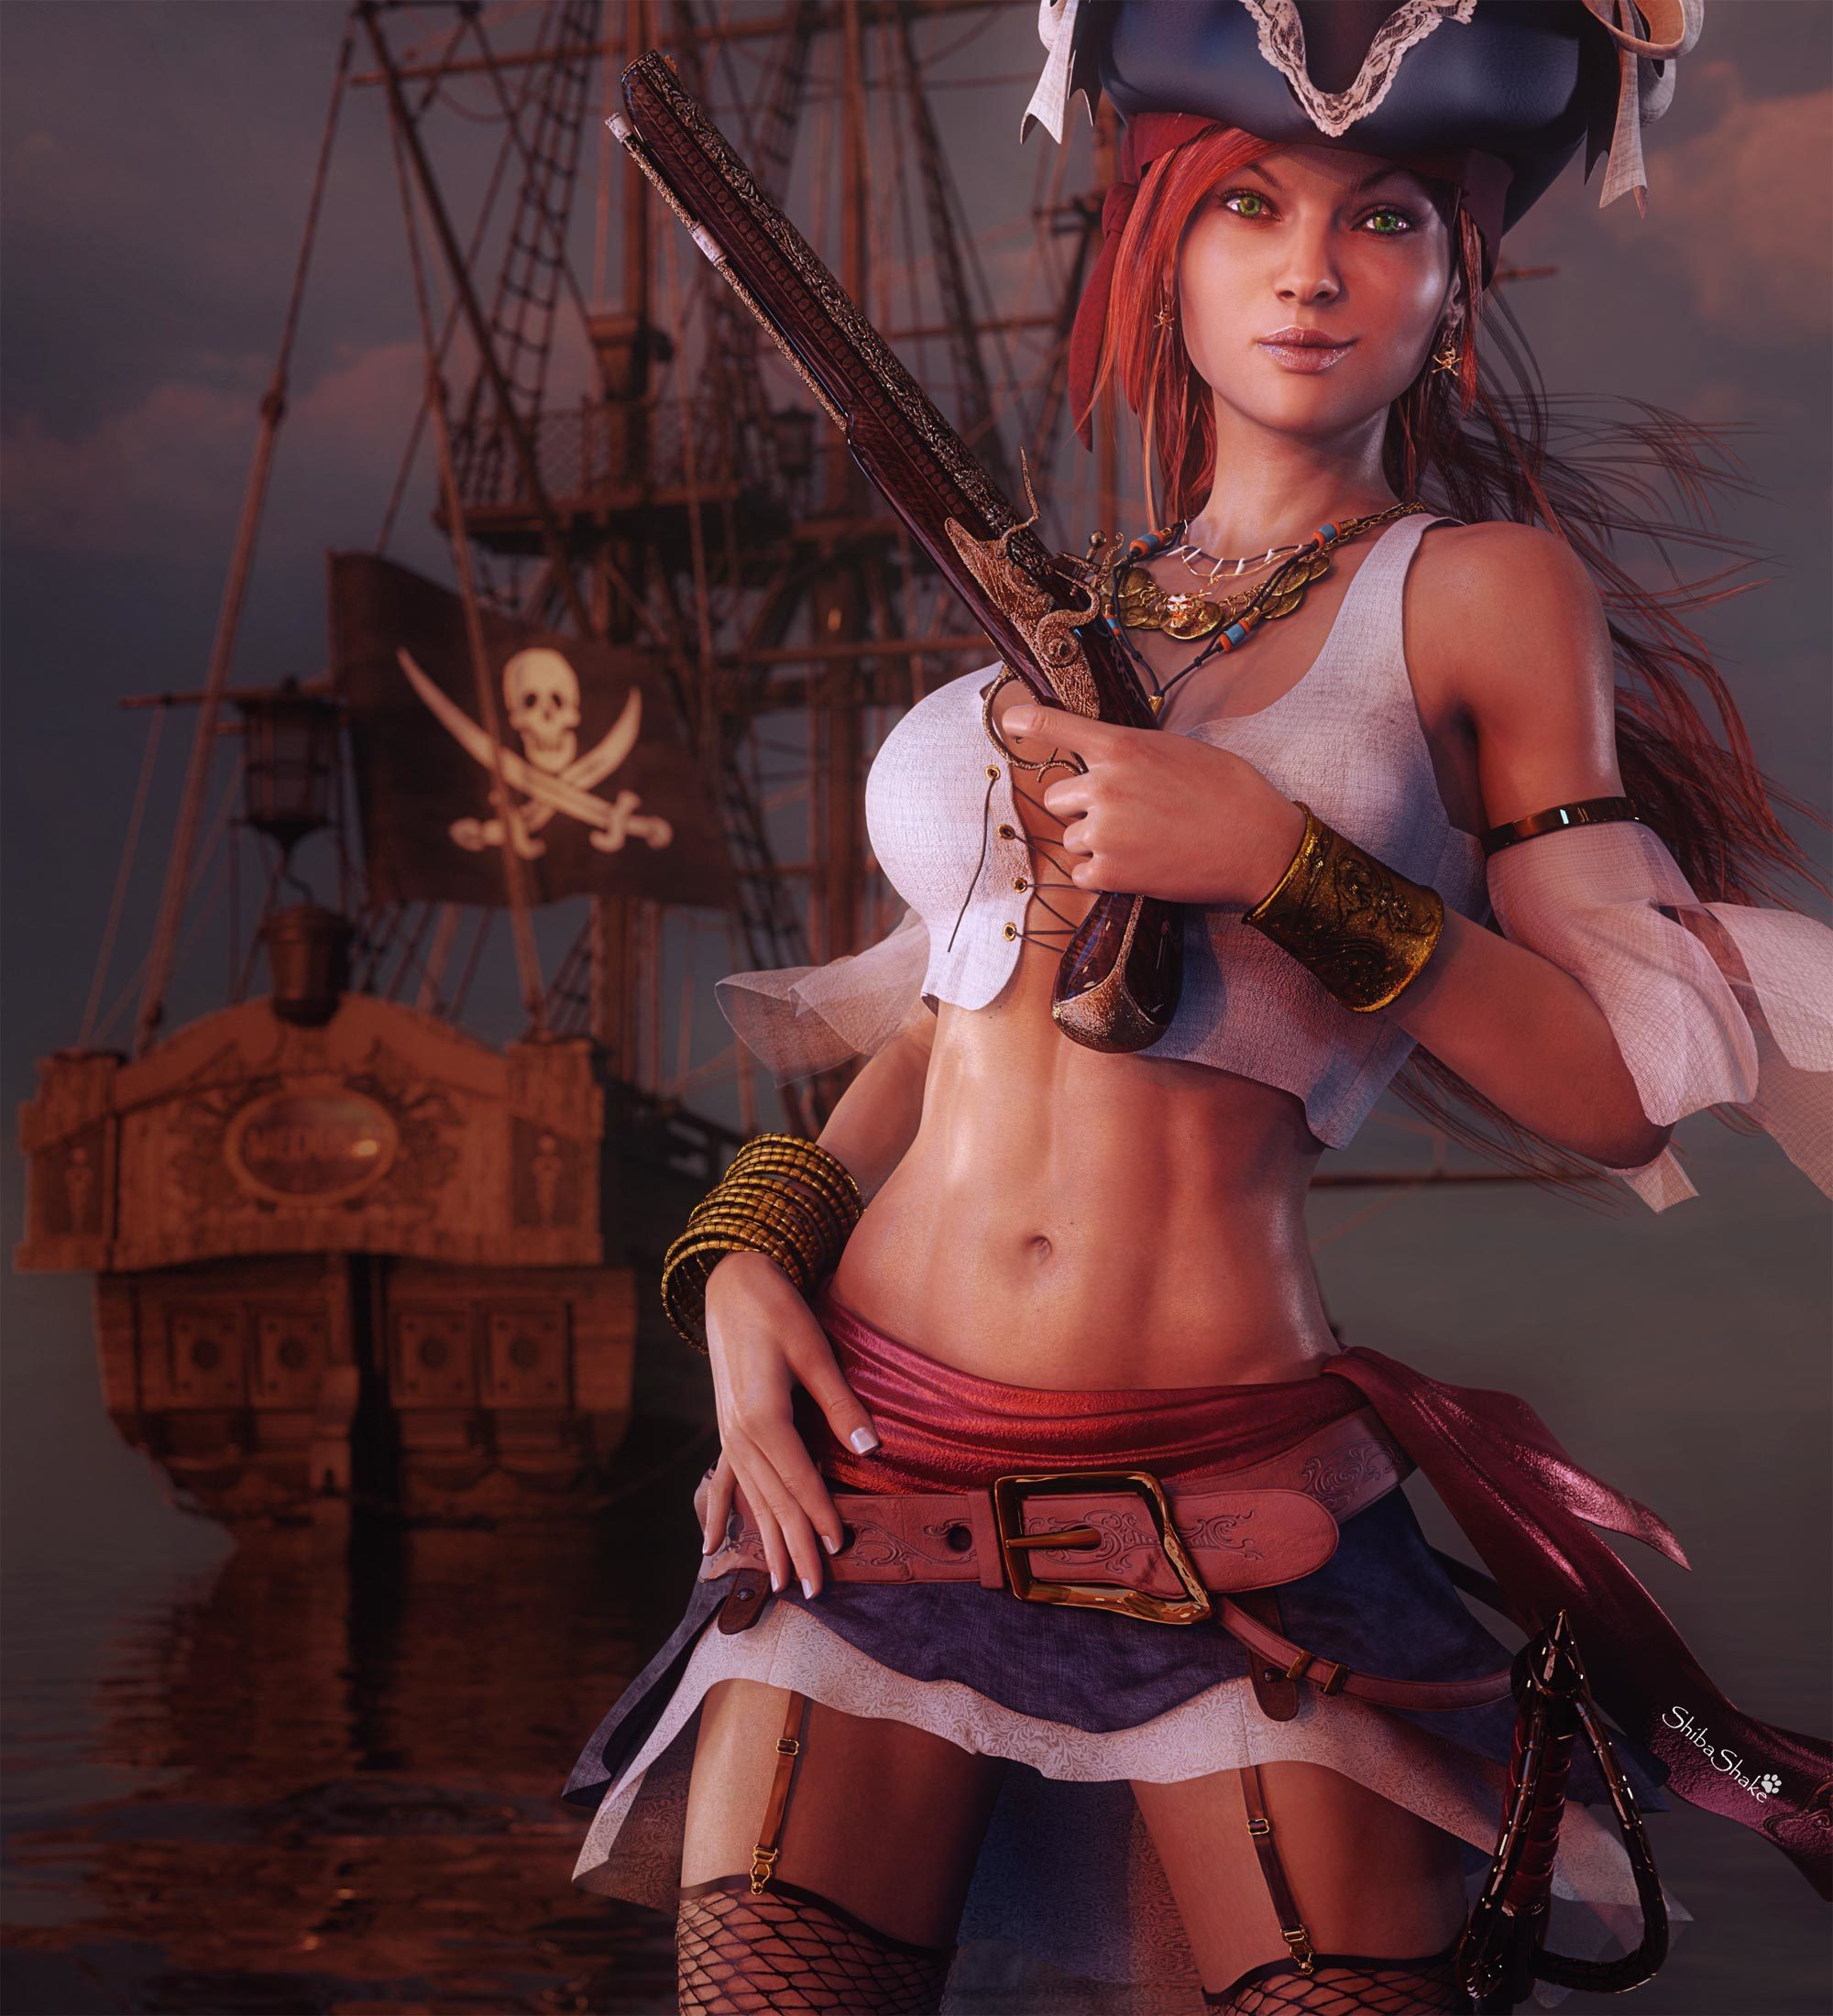 Nude pirate women fantasy art hentai gallery